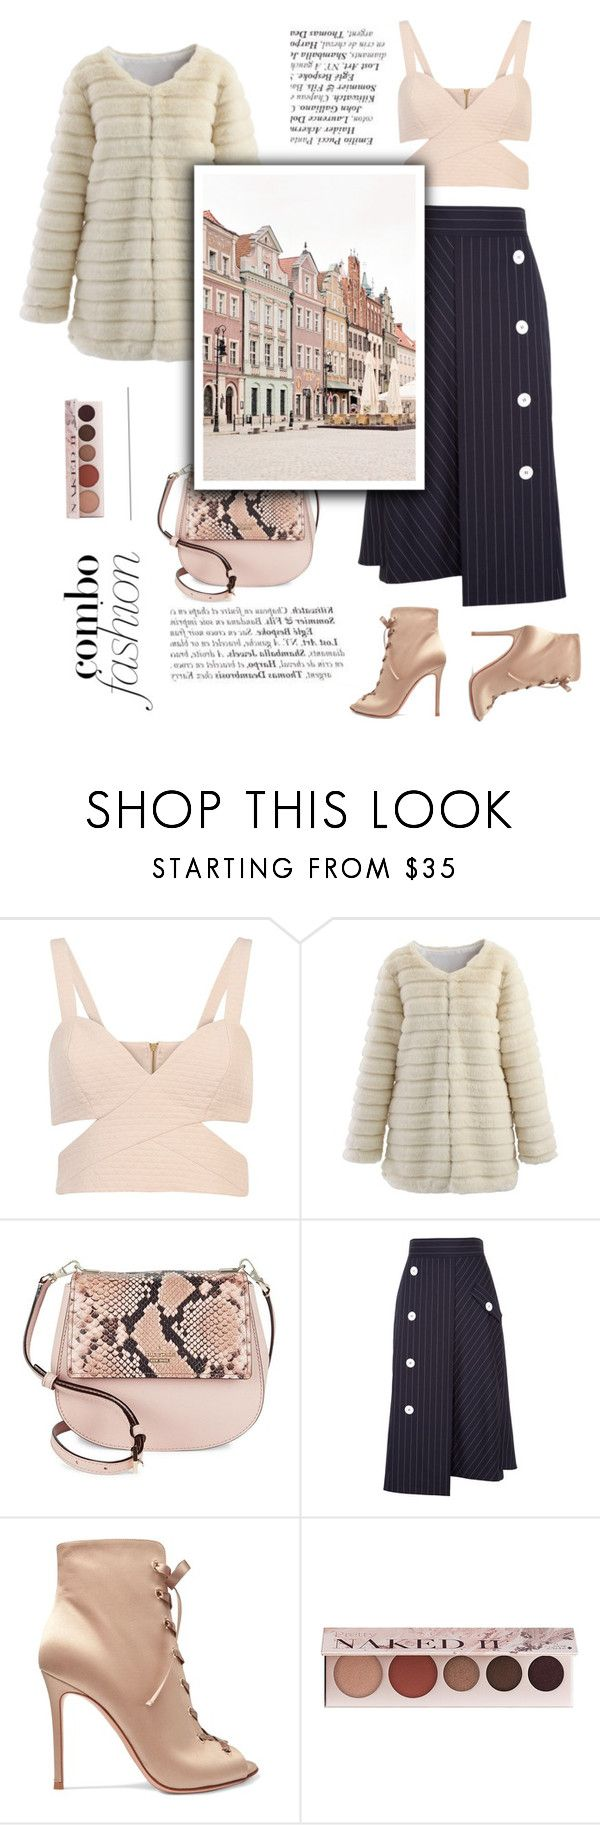 """""""Romantic outfit"""" by little-vogue ❤ liked on Polyvore featuring River Island, Chicwish, Kate Spade, Dorothee Schumacher, Gianvito Rossi, 100% Pure, Pink, fashionset and polyvorefashion"""